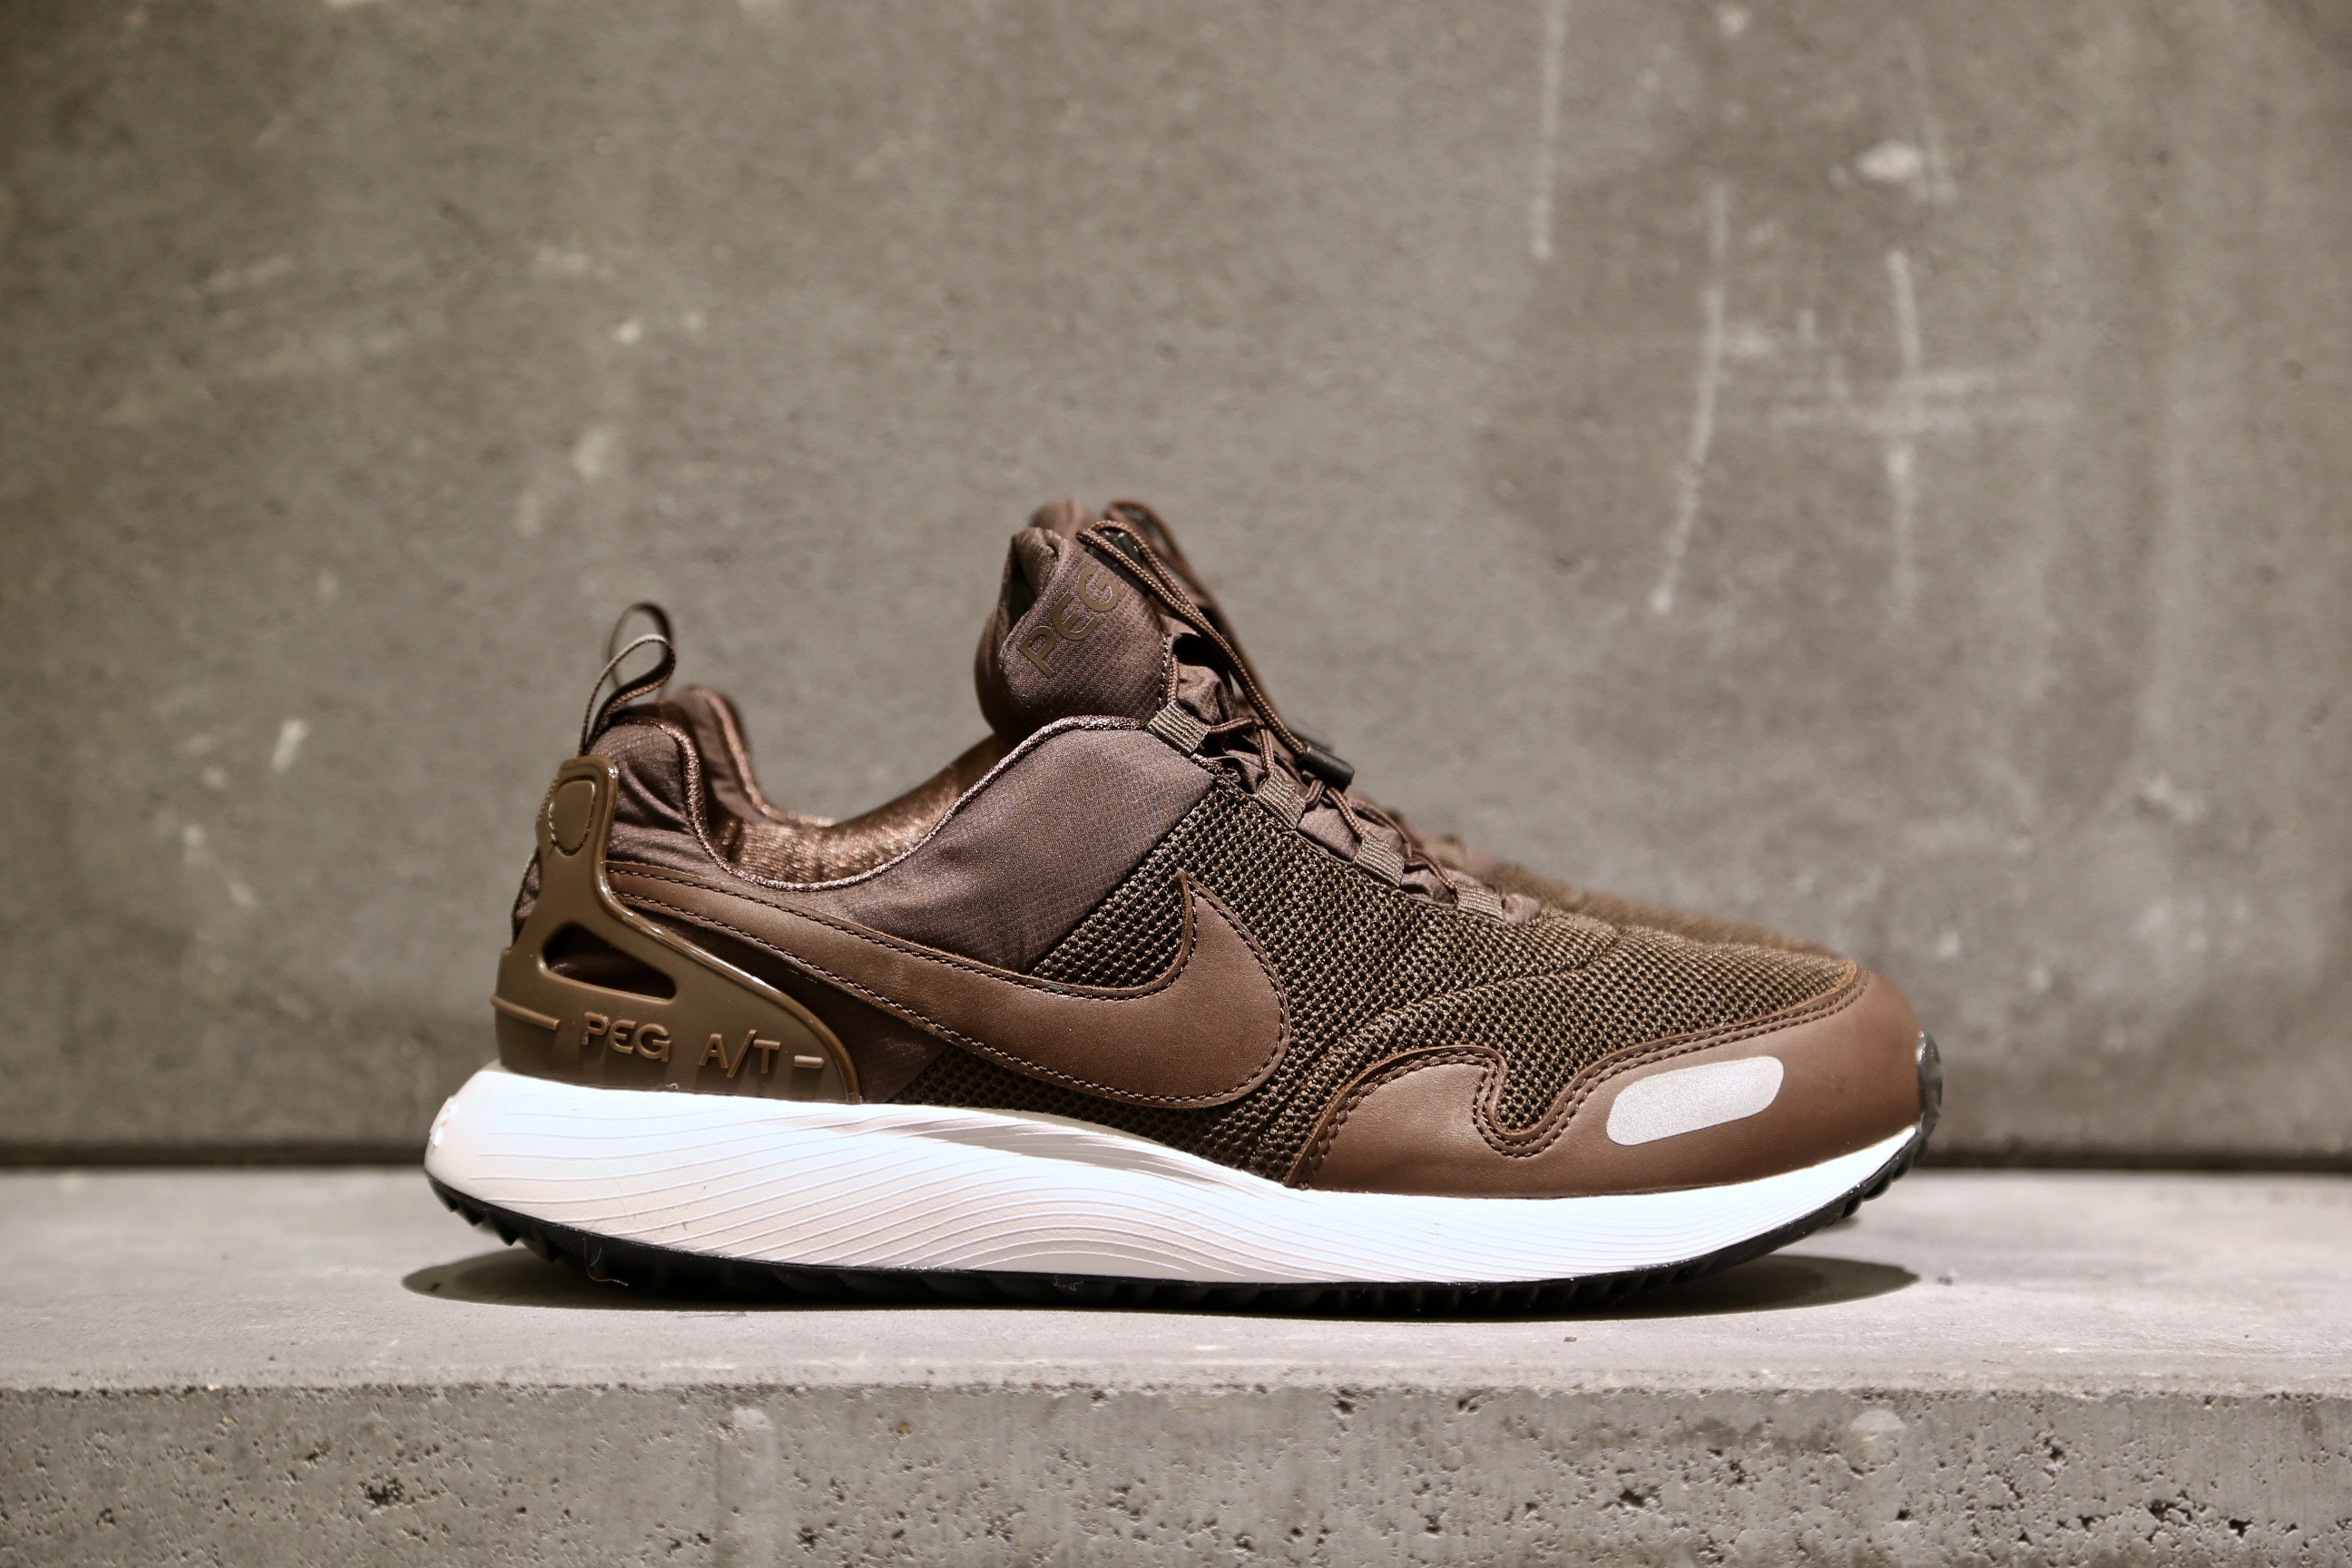 sneakers for cheap 402ba 0bb30 Nike Air Pegasus A/T PRM - Baroque Brown / Black / White